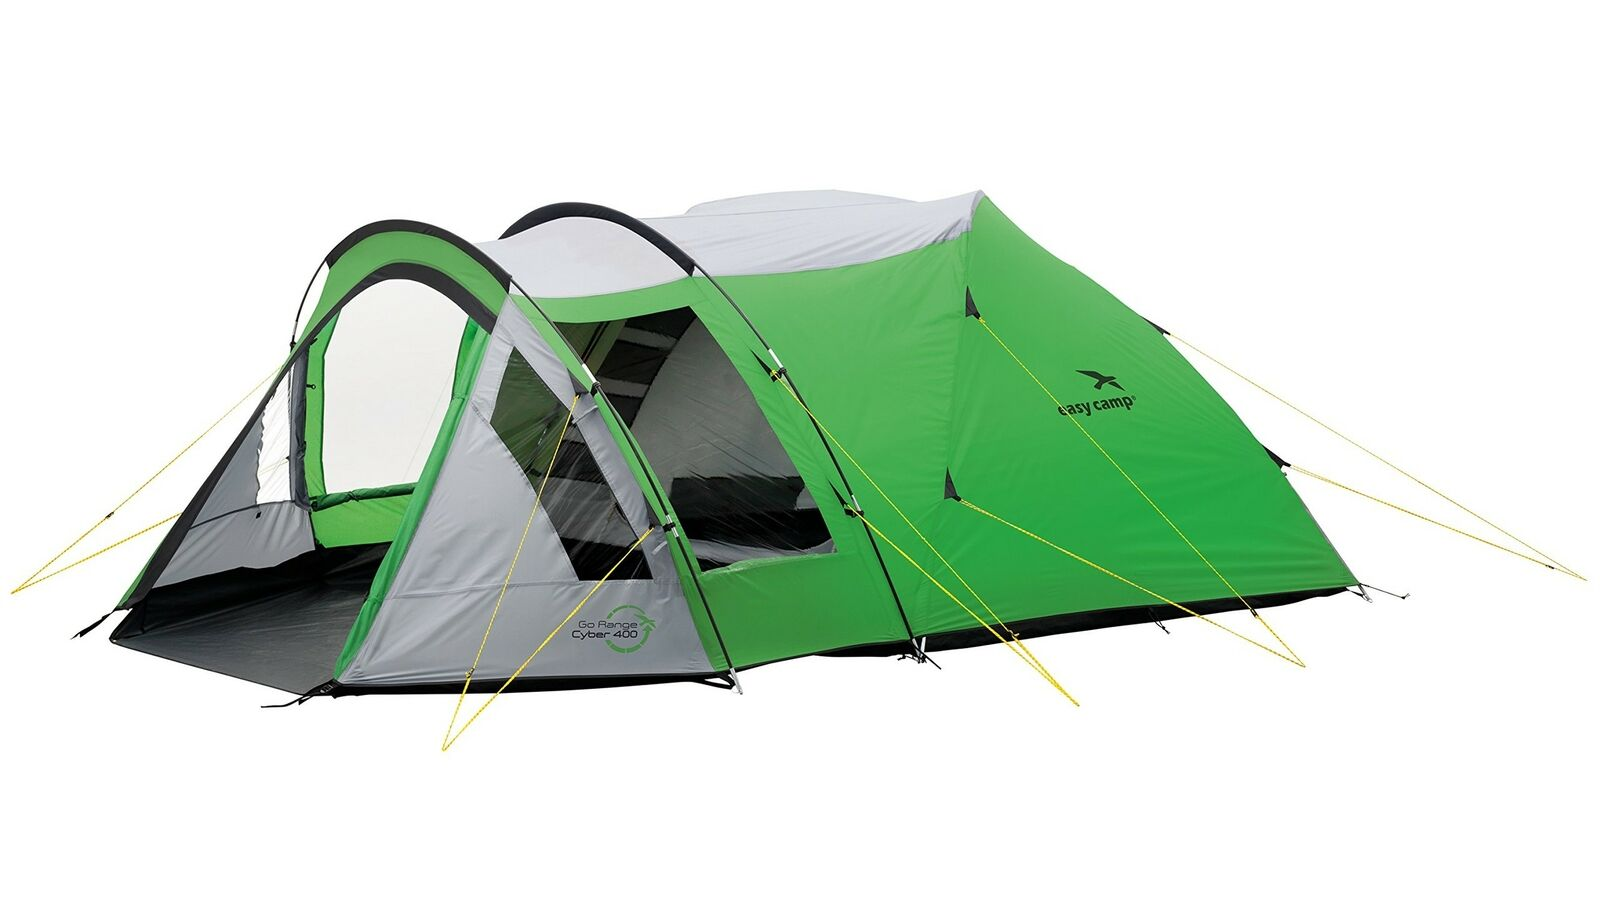 Easy Camp Cyber 400 Tent - Green/Silver